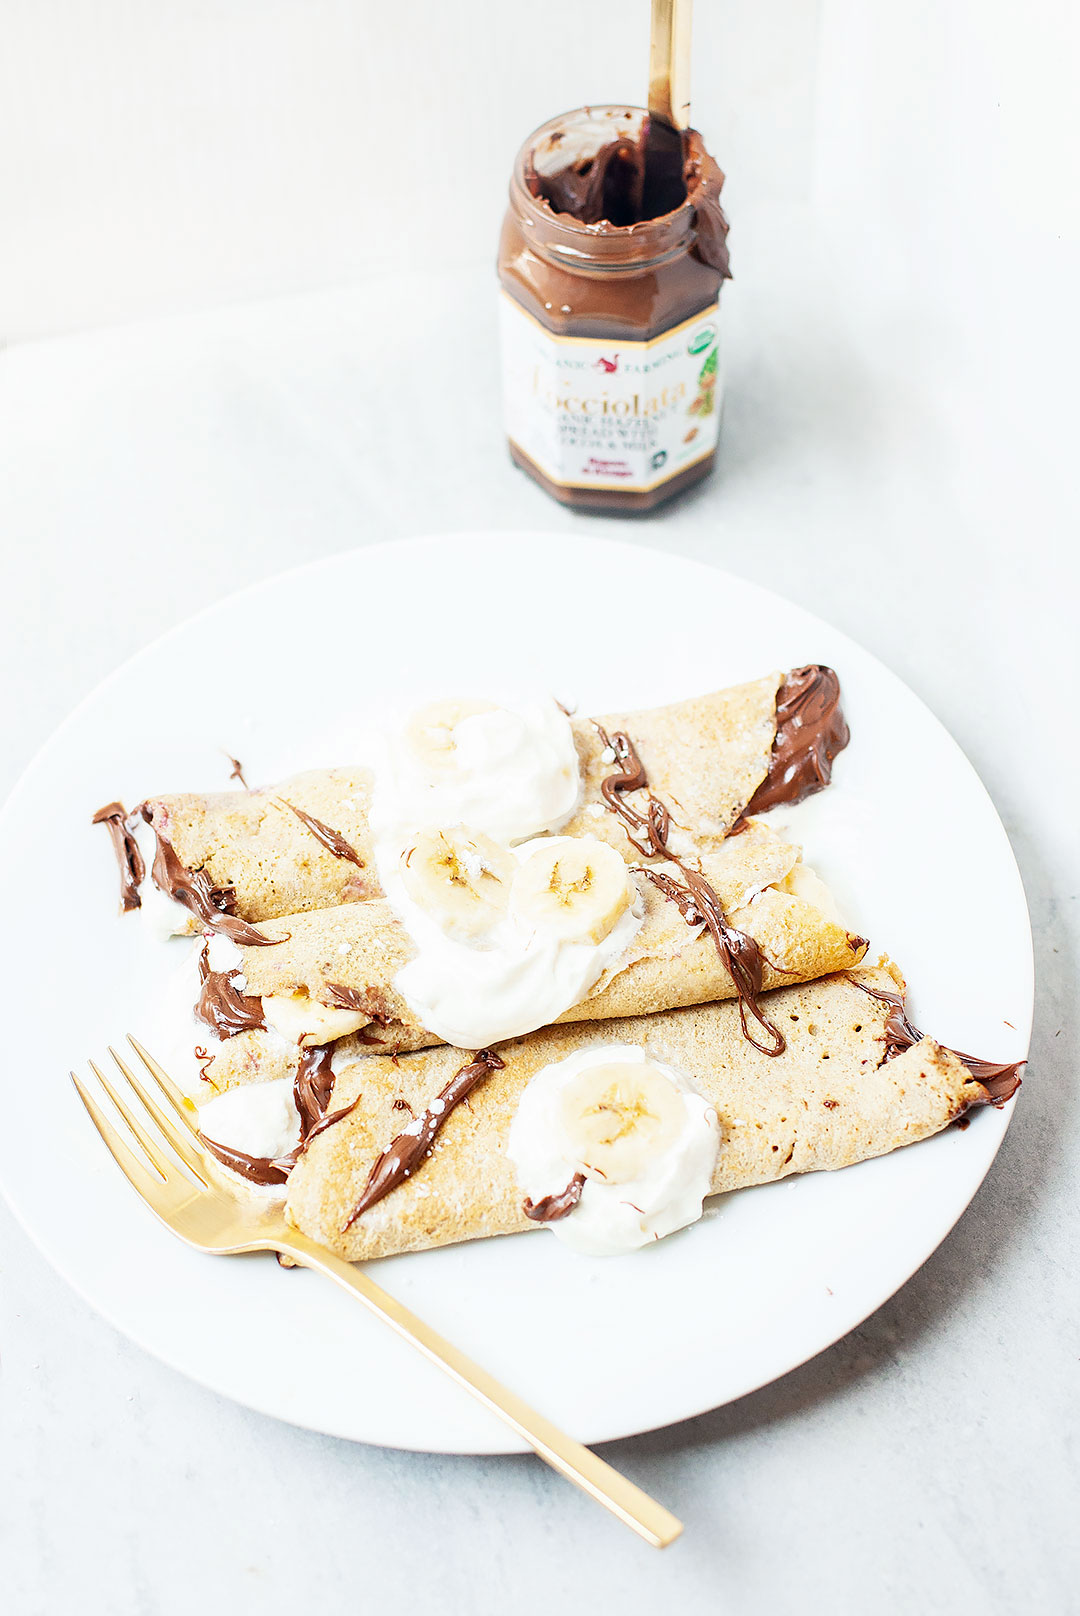 GLUTEN-FREE CREPES | The easiest gluten-free crepe recipe! Made with just a few simple pantry ingredients, like gluten-free oats, eggs, dairy-free milk, and coconut oil. Perfect for breakfast or dessert. | LOVELEAF CO. #crepes #glutenfree #dairyfree #glutenfreecrepes #breakfast #easyrecipe #dessert #oats #easy